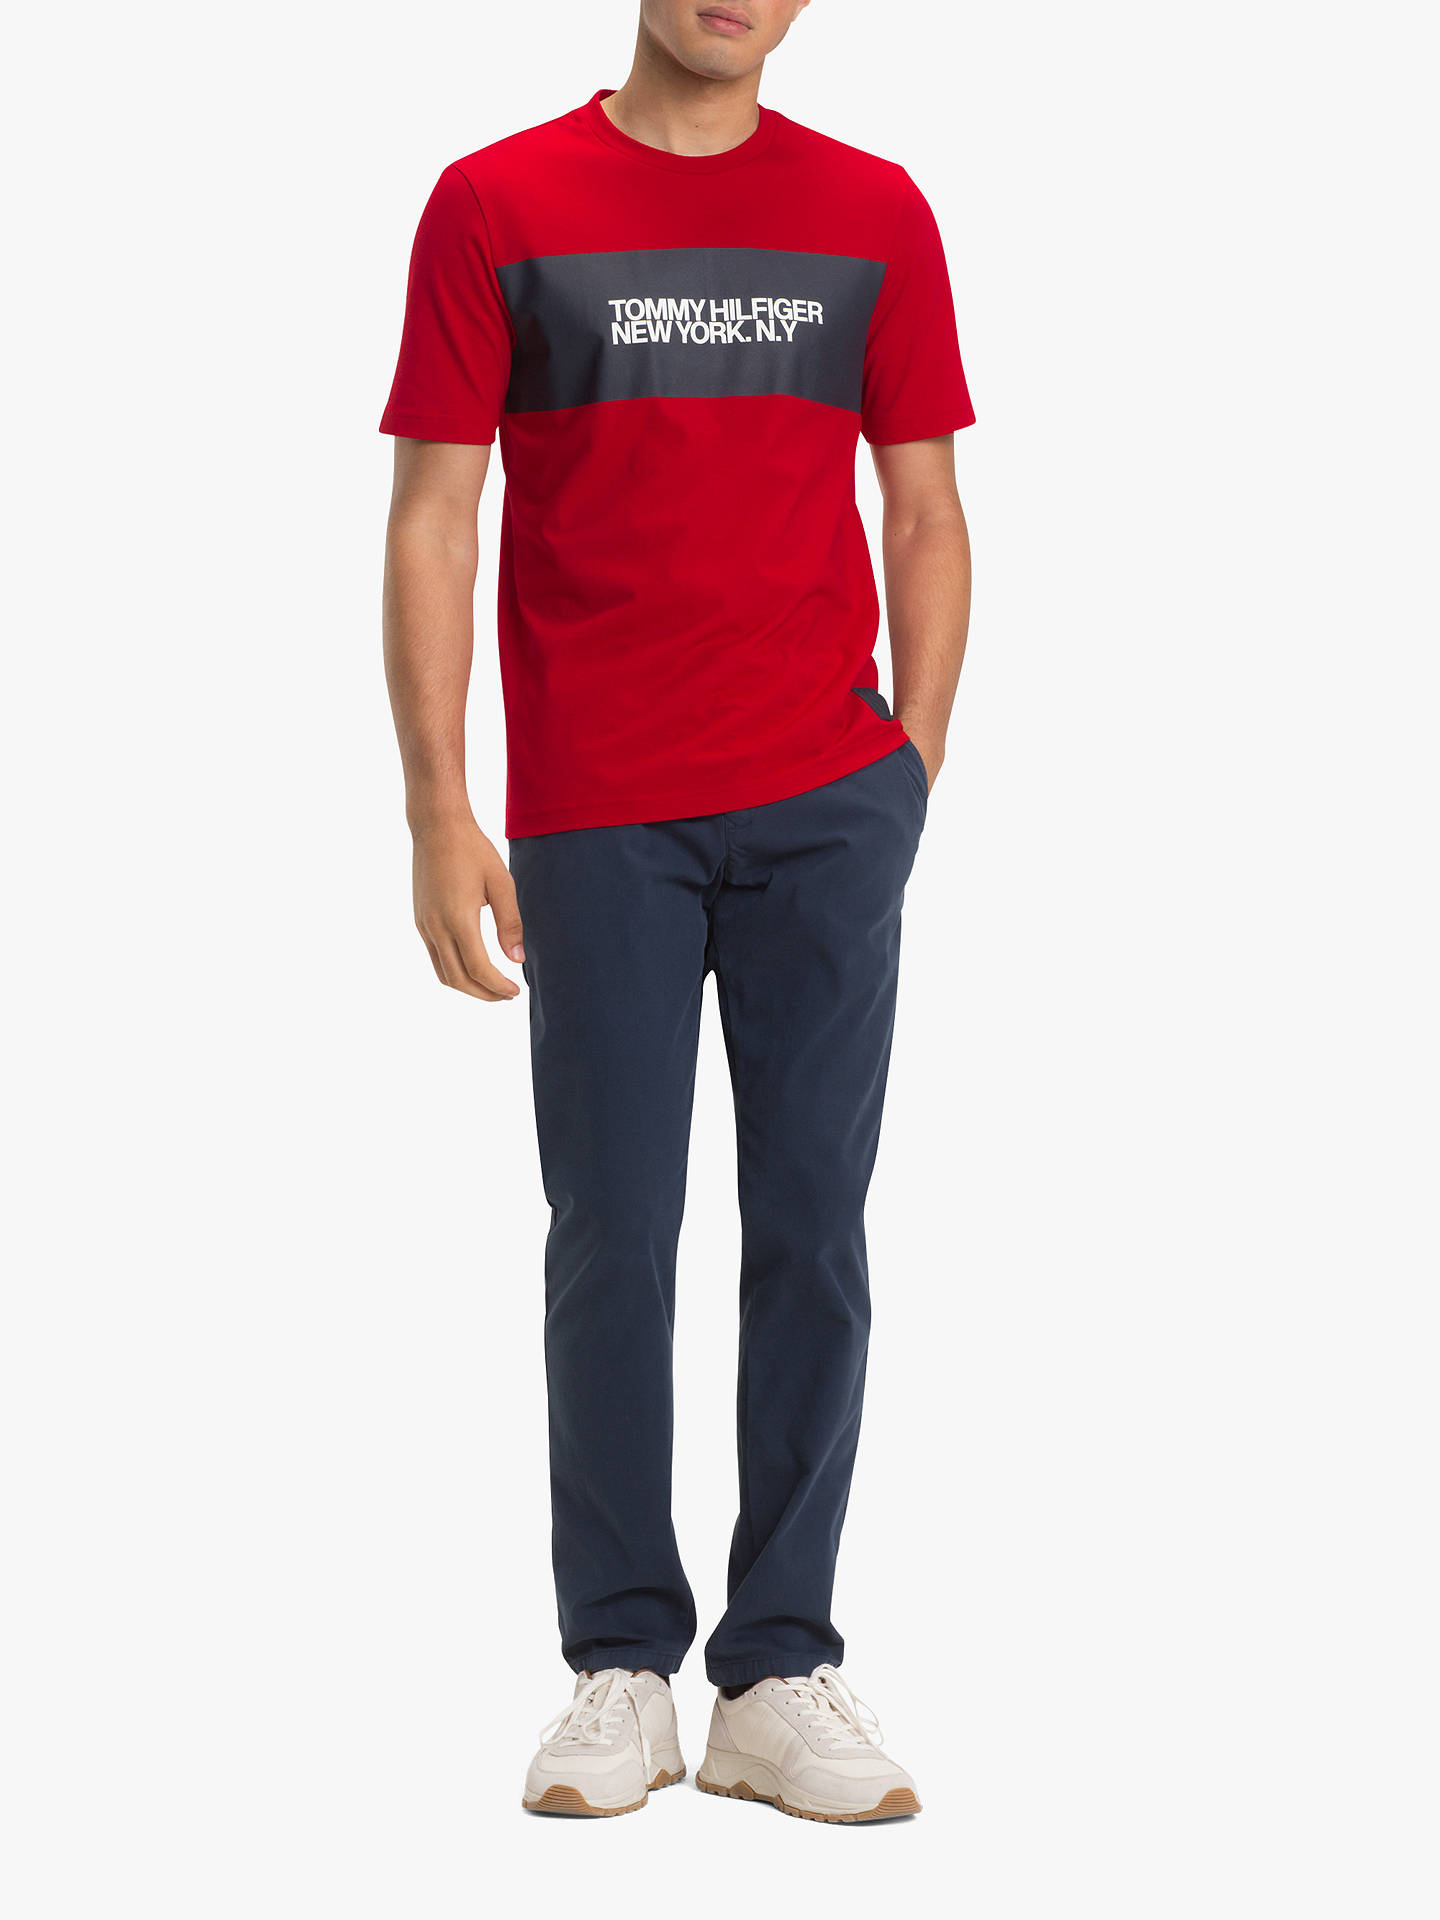 4668fda489ee7 ... BuyTommy Hilfiger Big Scale Logo T-Shirt, Haute Red, M Online at  johnlewis ...